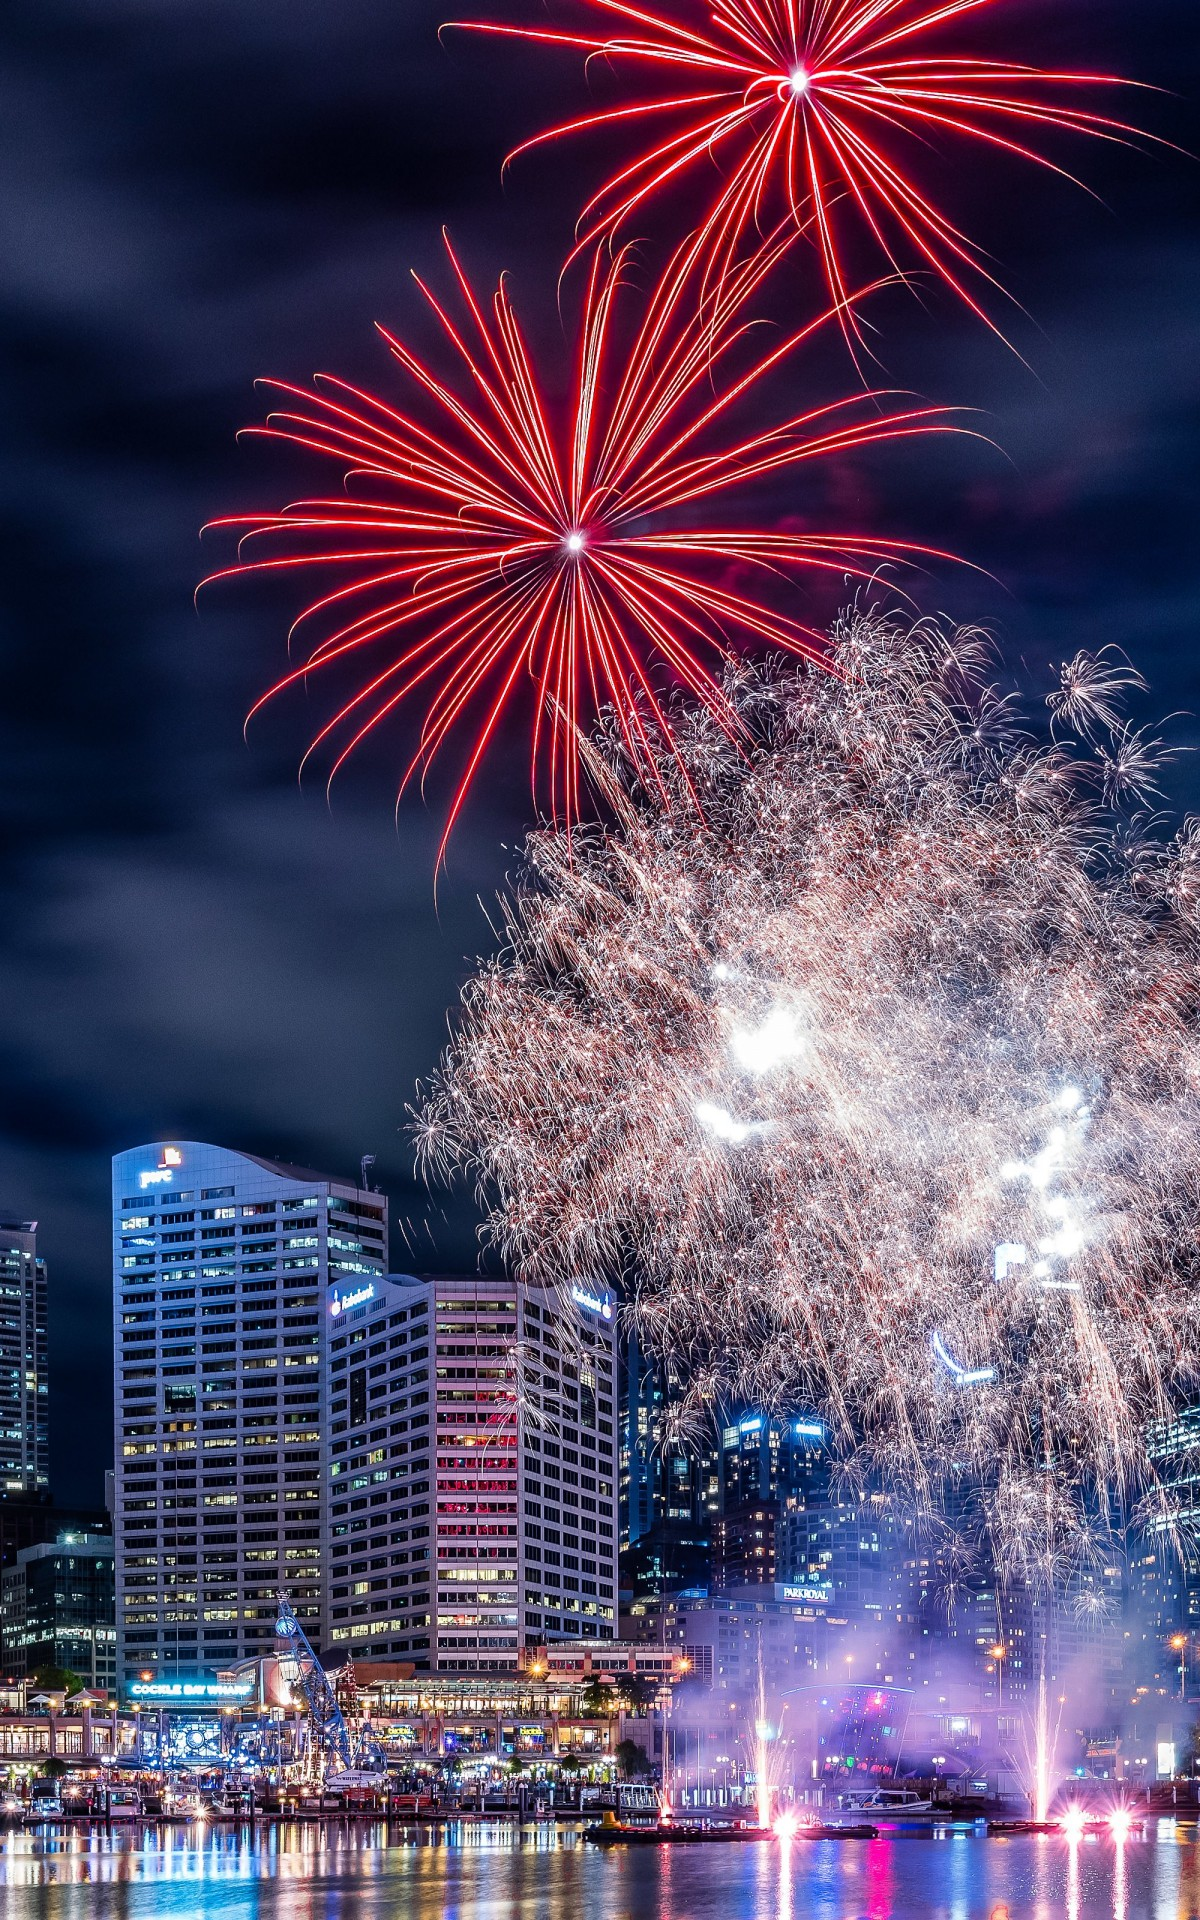 Fireworks In Darling Harbour Wallpaper for Amazon Kindle Fire HDX